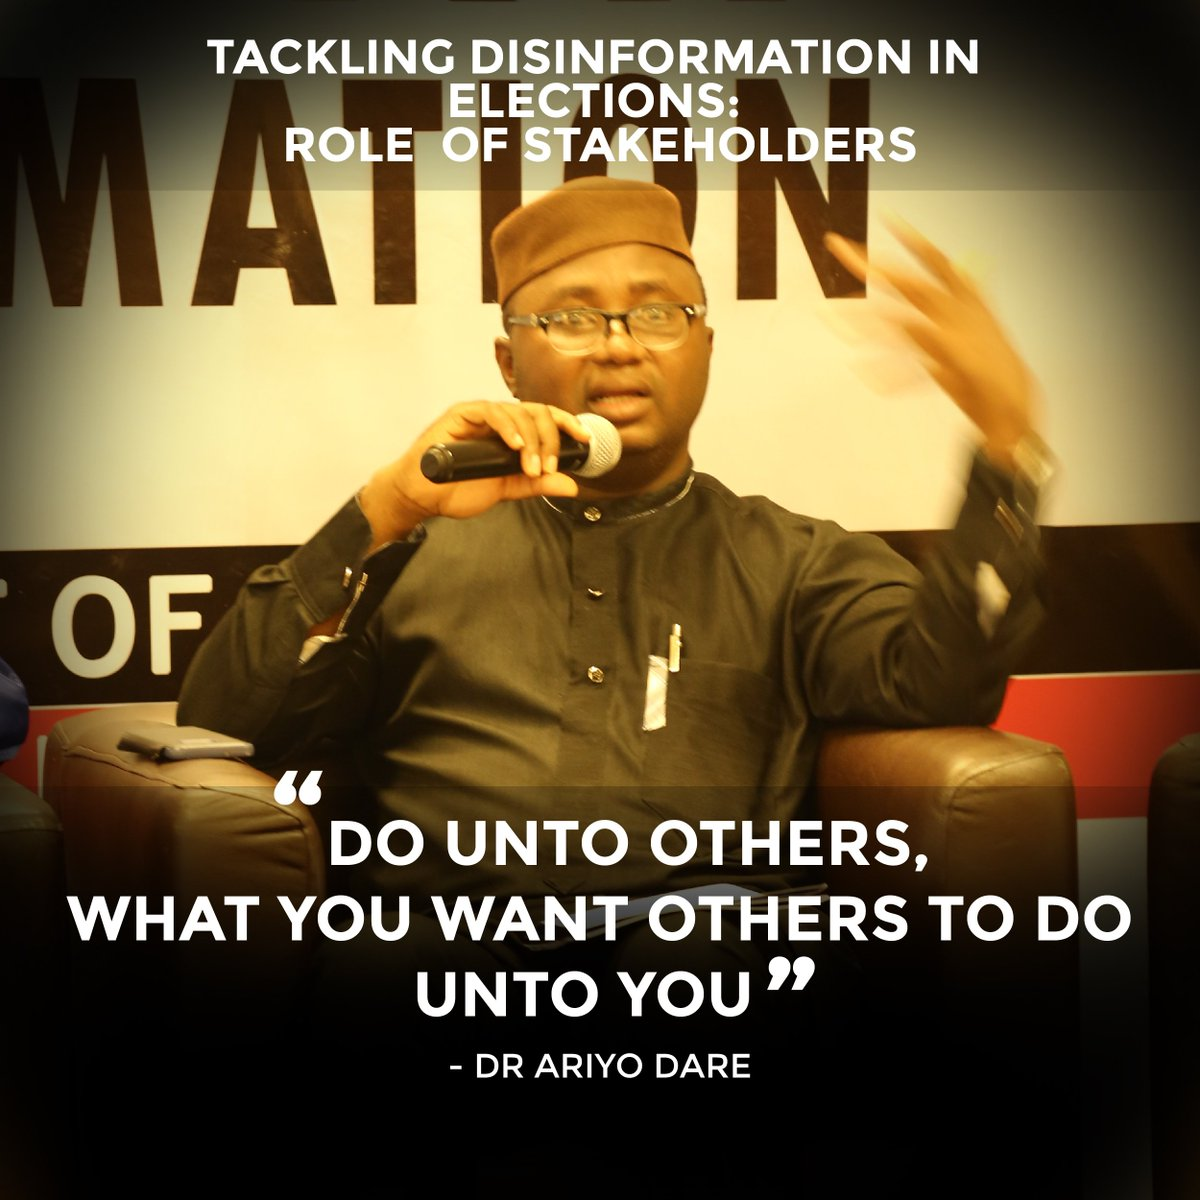 """TACKLING DISINFORMATION IN  ELECTIONS:  ROLE  OF STAKEHOLDERS """"DO UNTO OTHERS,  WHAT YOU WANT OTHERS TO DO  UNTO YOU"""" - @AriyoAristotle @CDDWestAfrica @NDI @USAID @HassanIdayat @MOAdanu @oaaigbe @OrikriJ @ISRAELADE2 @biodunbjk11 @buharimeter <br>http://pic.twitter.com/2ZQvwLf8Fu"""